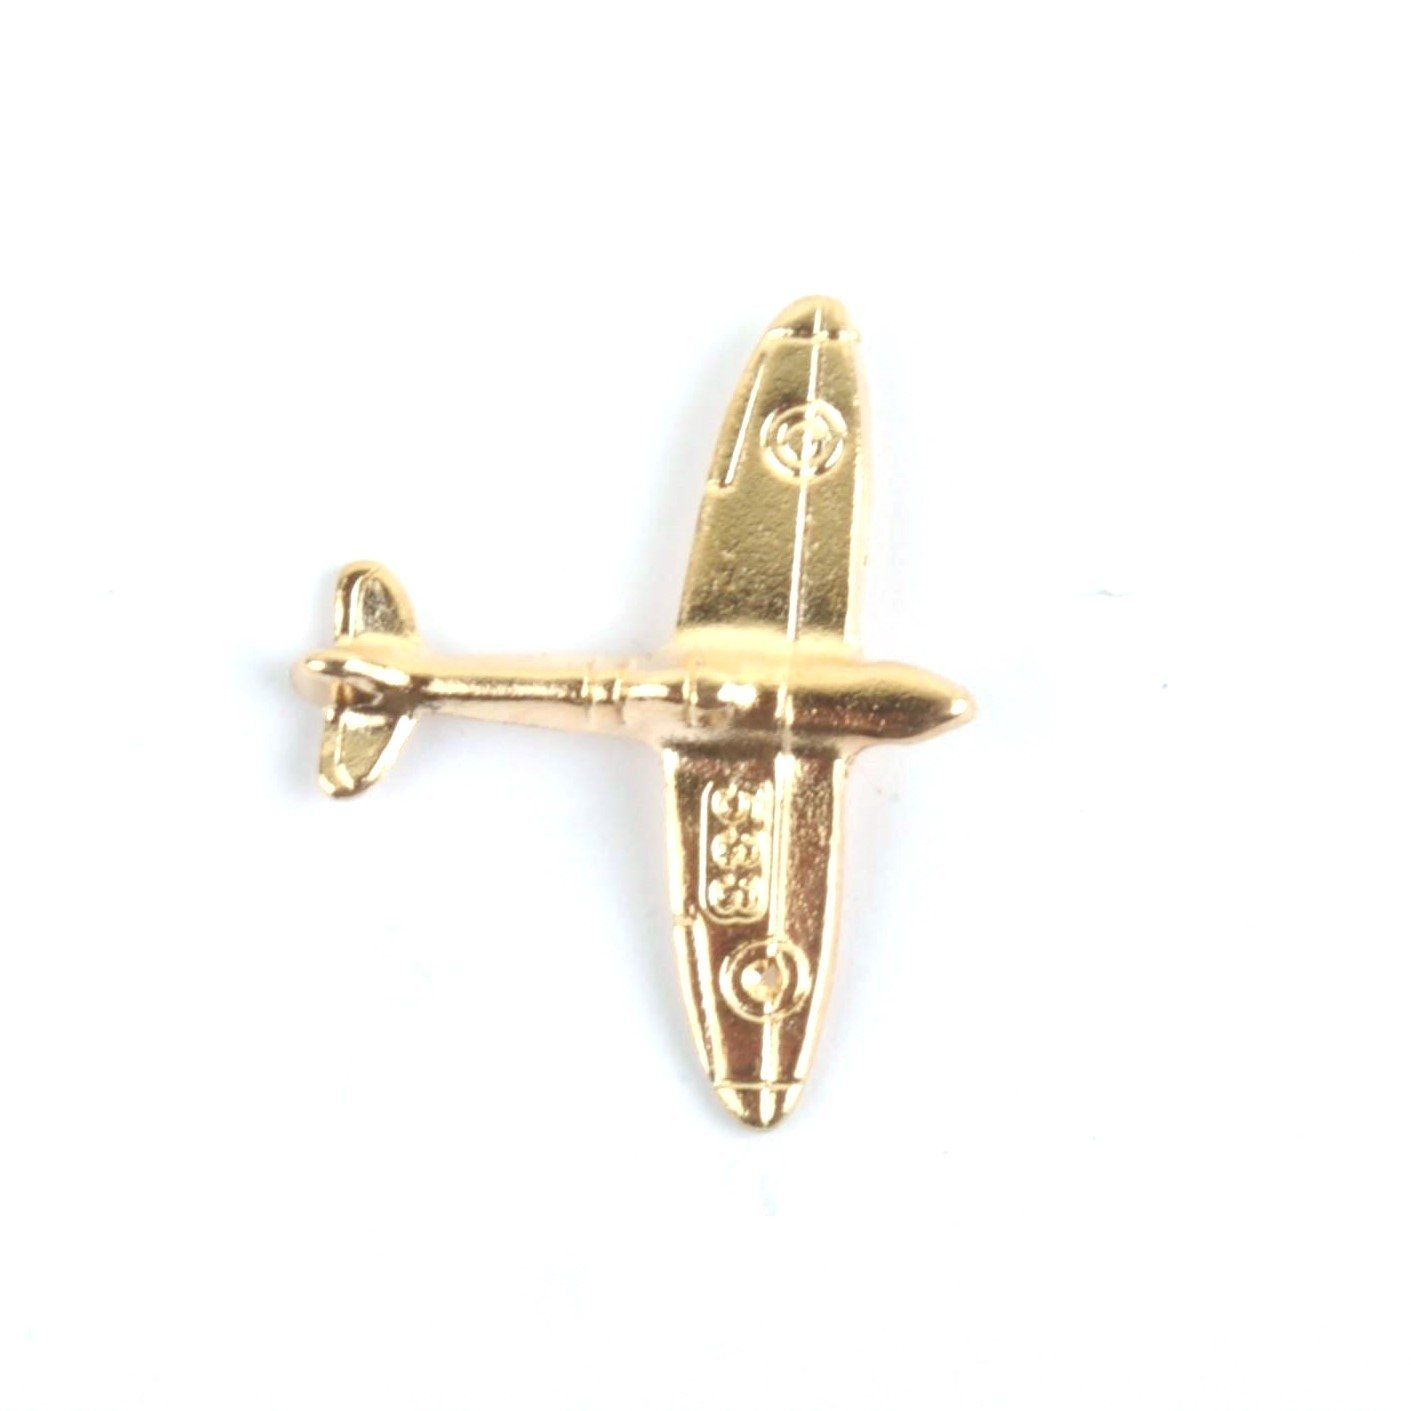 Spitfire Gold Aeroplane Lapel Pin Badge - Minimum Mouse